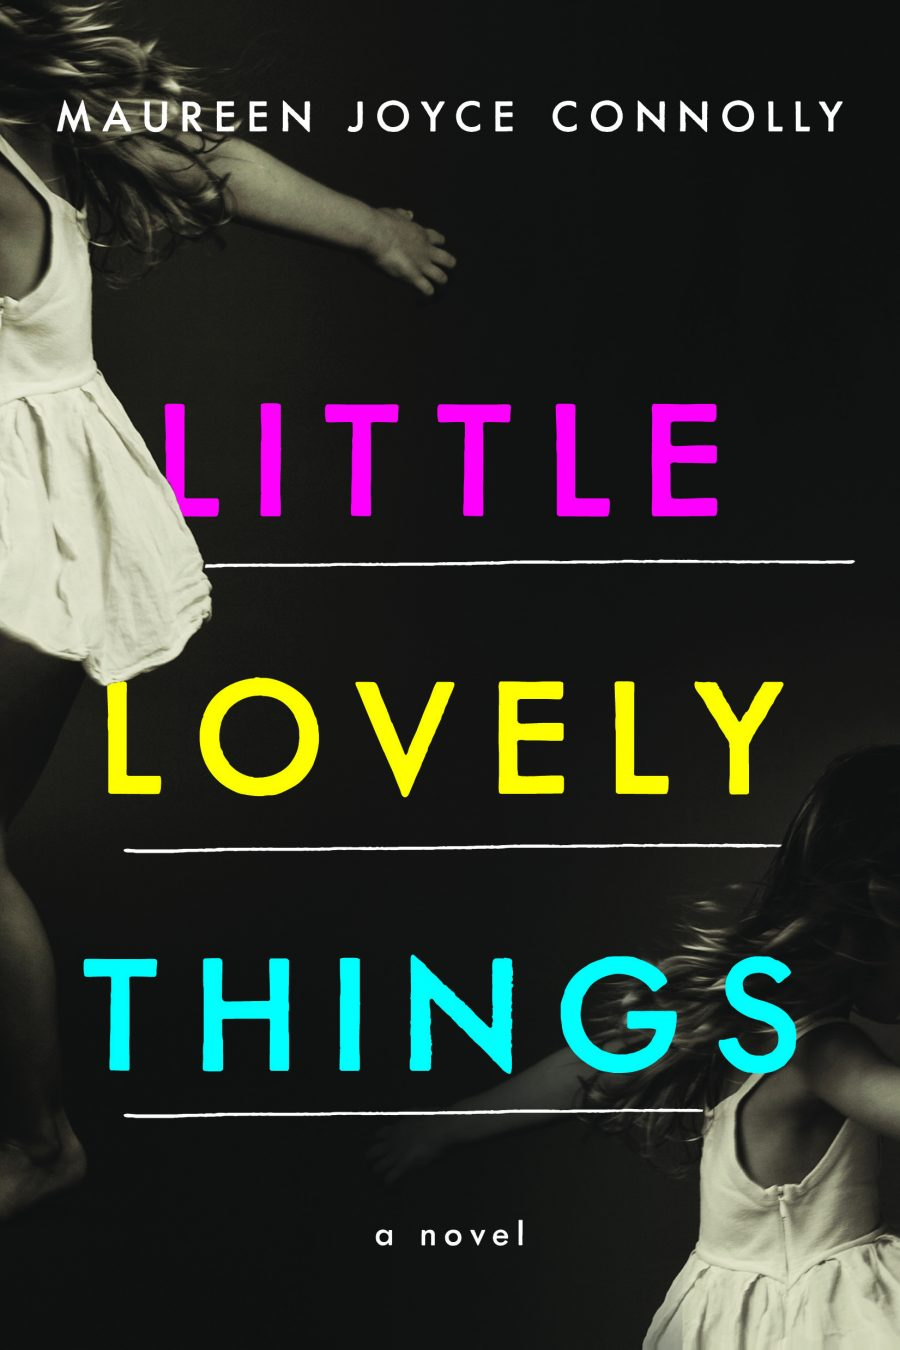 little-lovely-things-maureen-connolly-e1543341372398